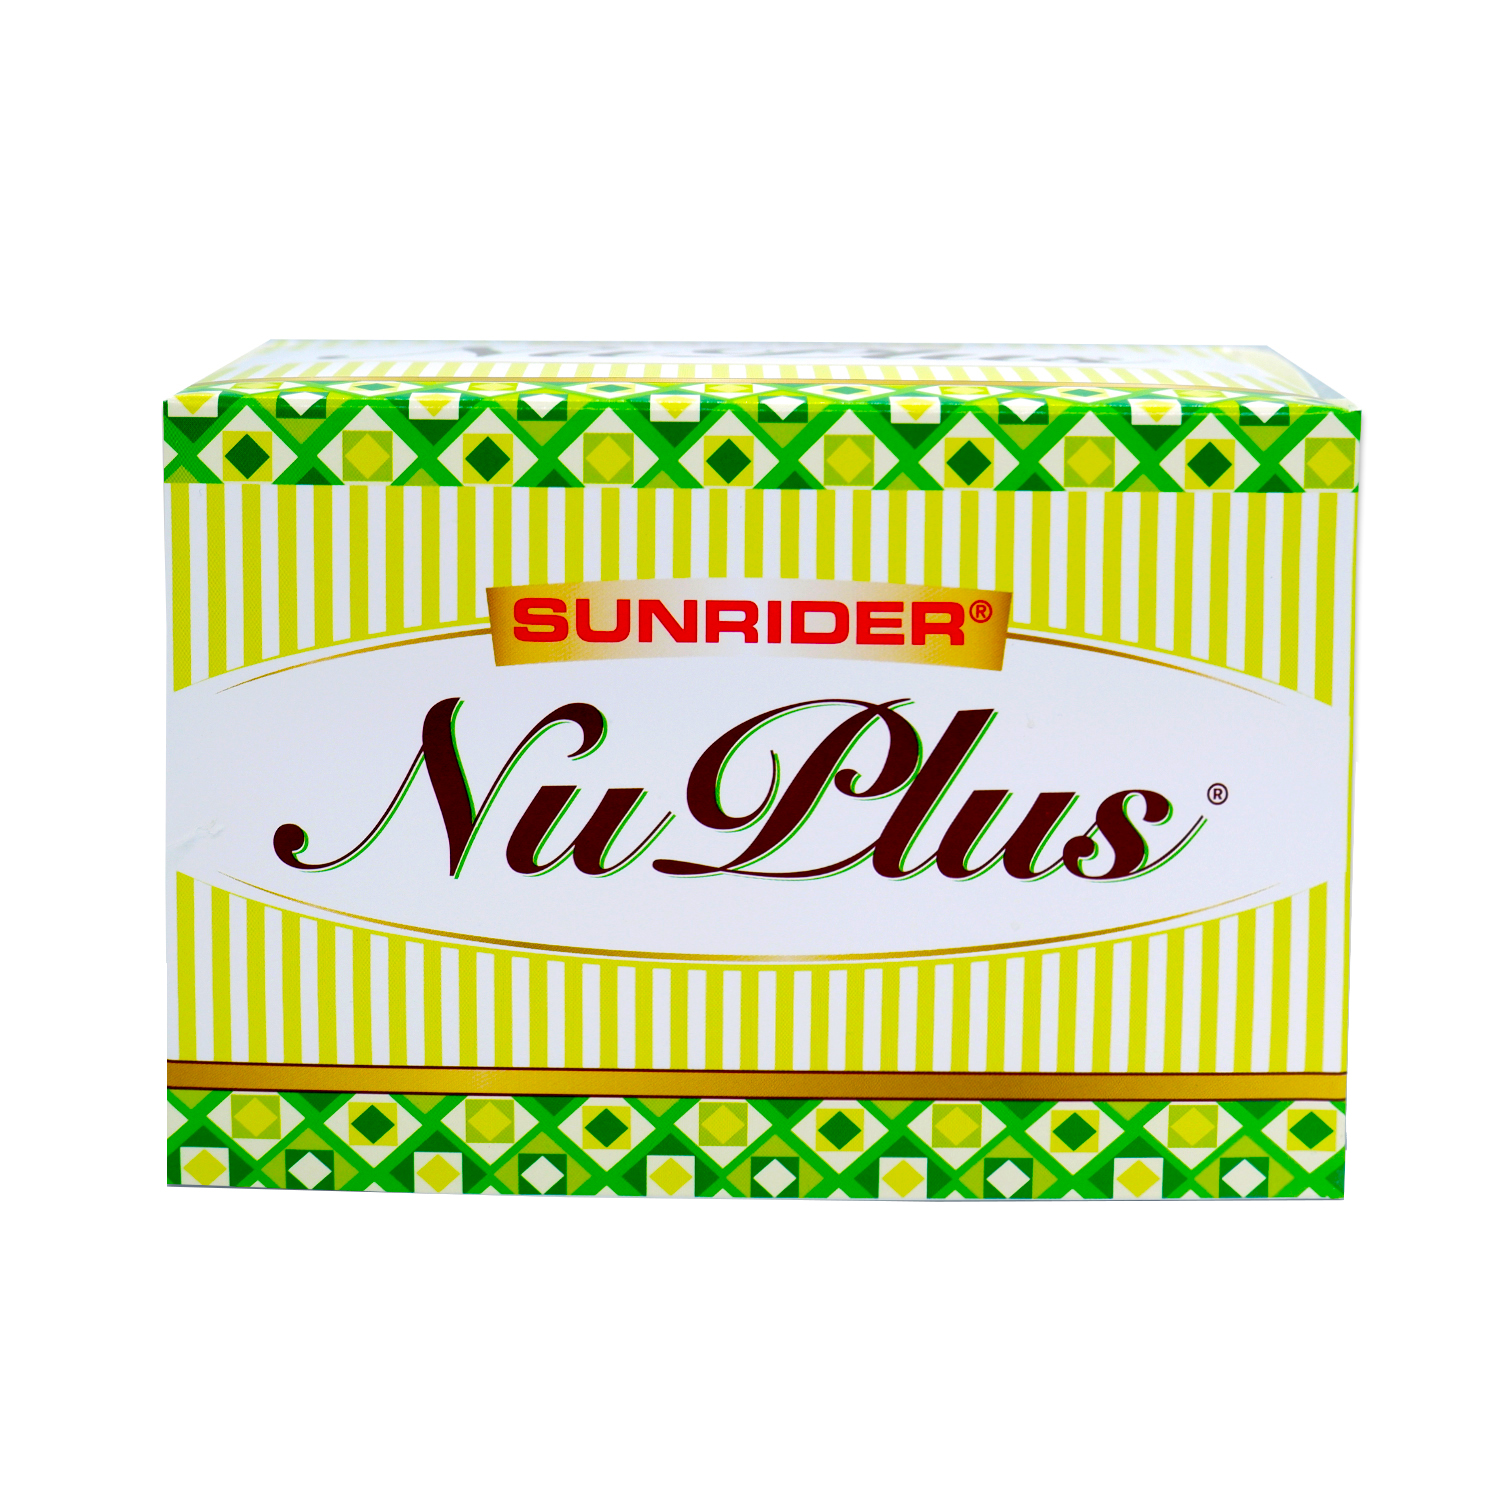 NuPlus<sup>®</sup> Piña Banana (10/15g packs)